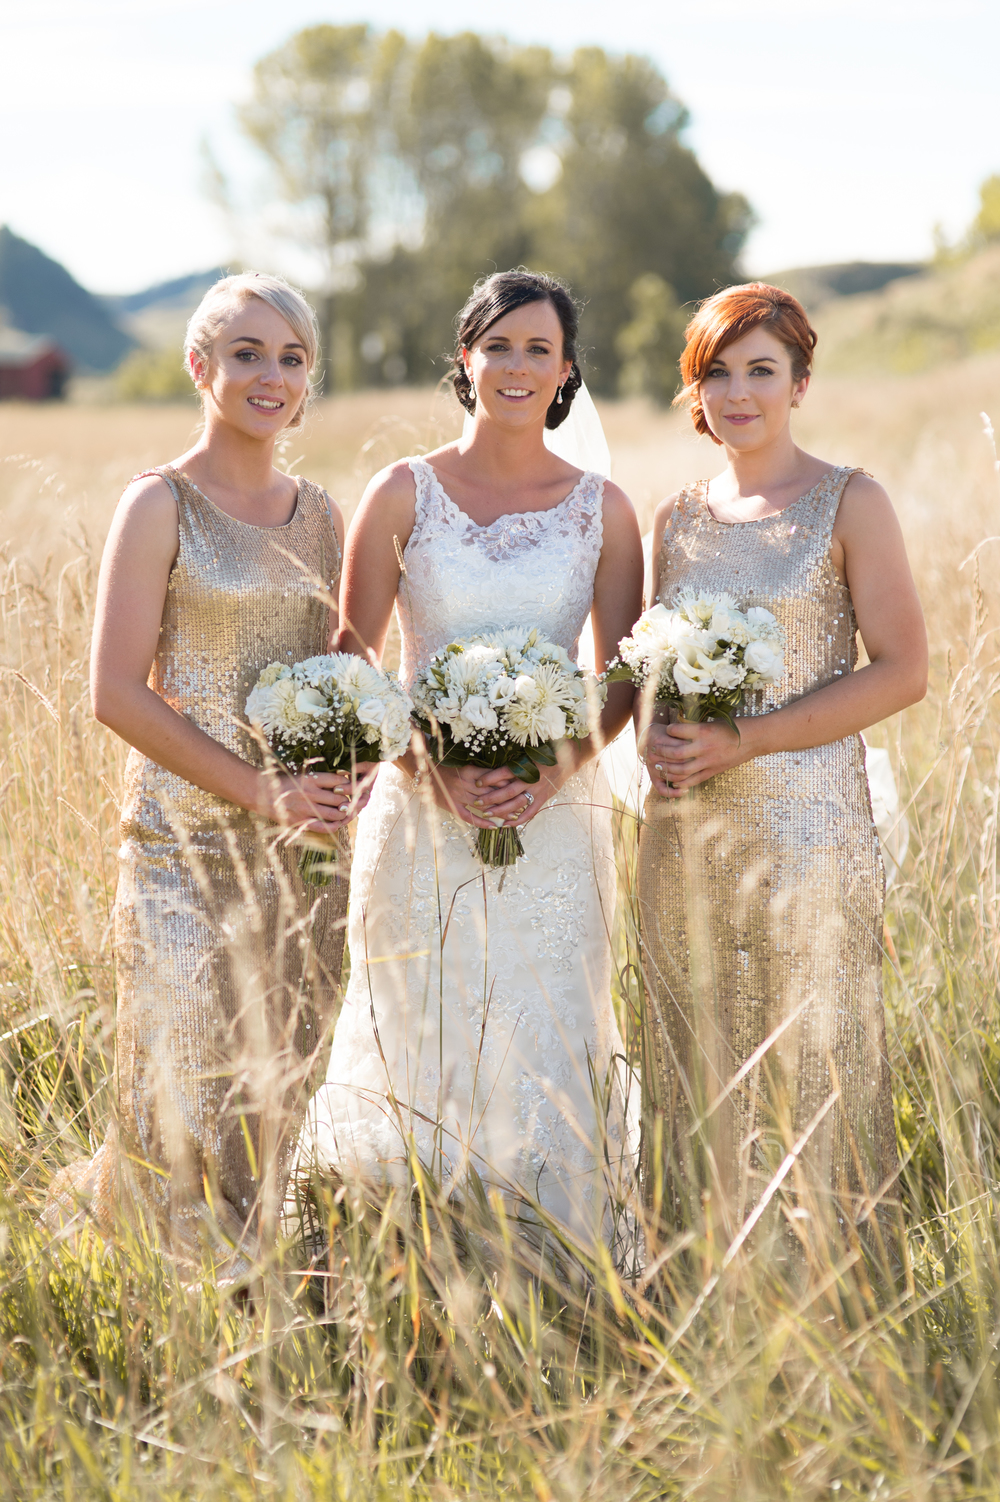 Stunning gold bridesmaids dresses | Astra Bridal Bride Megan | Photography by Laura Ridley | www.borrowedandblue.kiwi